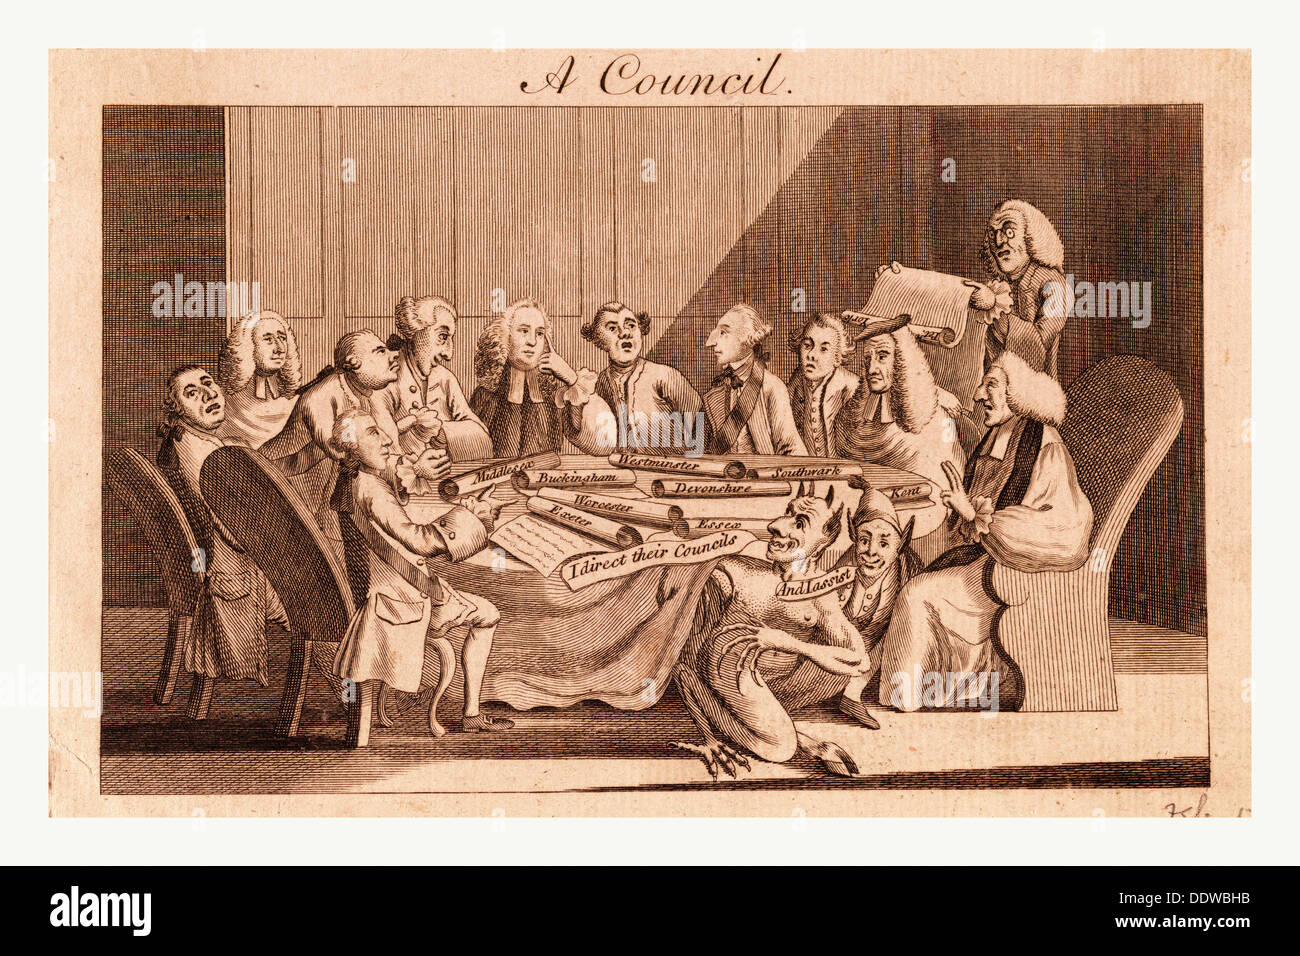 privy council The judicial committee of the privy council (jcpc) is one of the highest courts in the united kingdom established by the judicial committee act 1833 (or with the privy council appeals act 1832) to hear appeals formerly heard by the king-in-council.